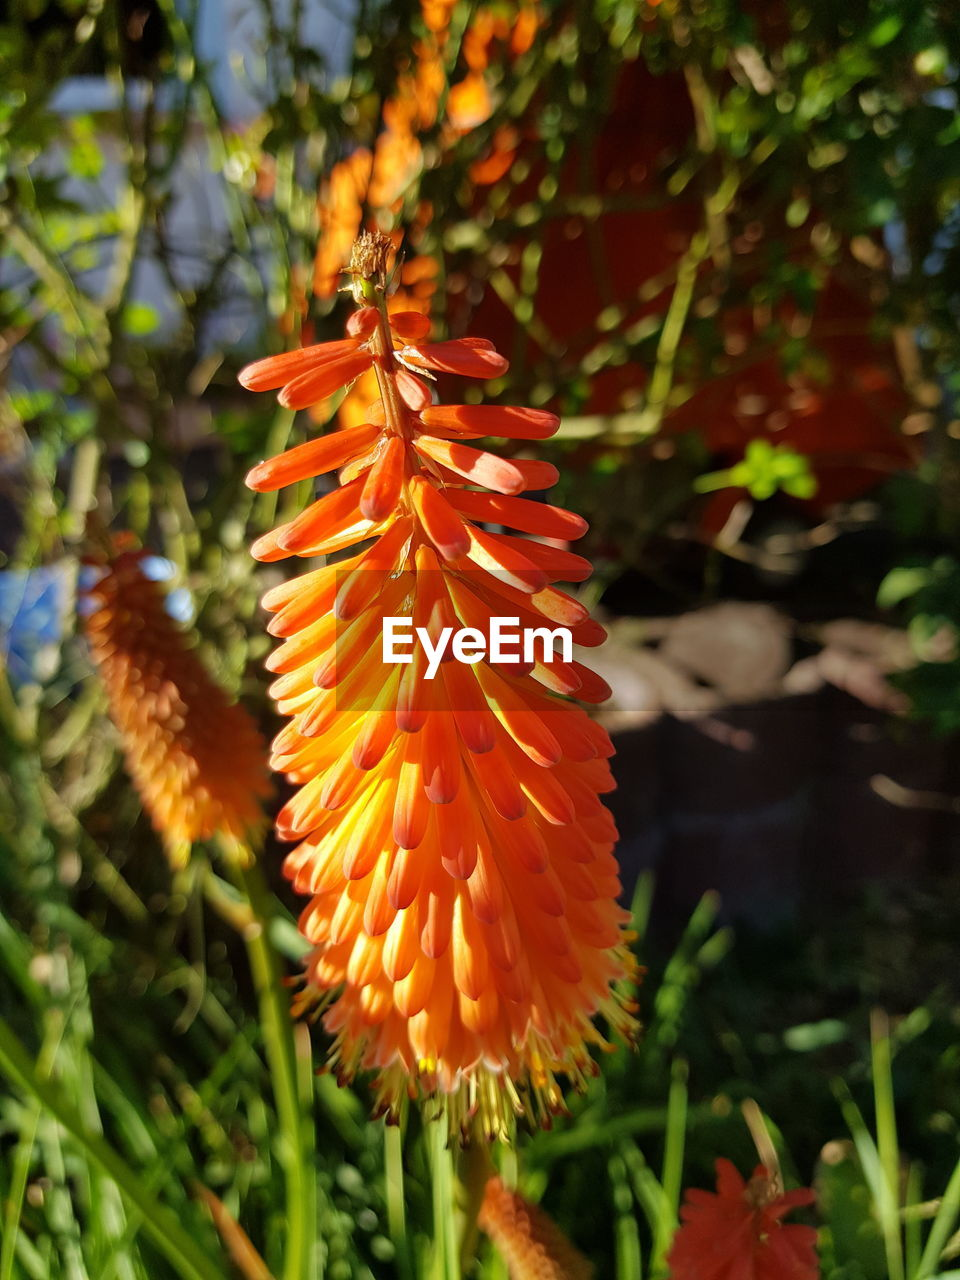 plant, orange color, beauty in nature, growth, close-up, nature, no people, vulnerability, flower, fragility, day, focus on foreground, flowering plant, freshness, autumn, petal, leaf, plant part, selective focus, flower head, outdoors, change, leaves